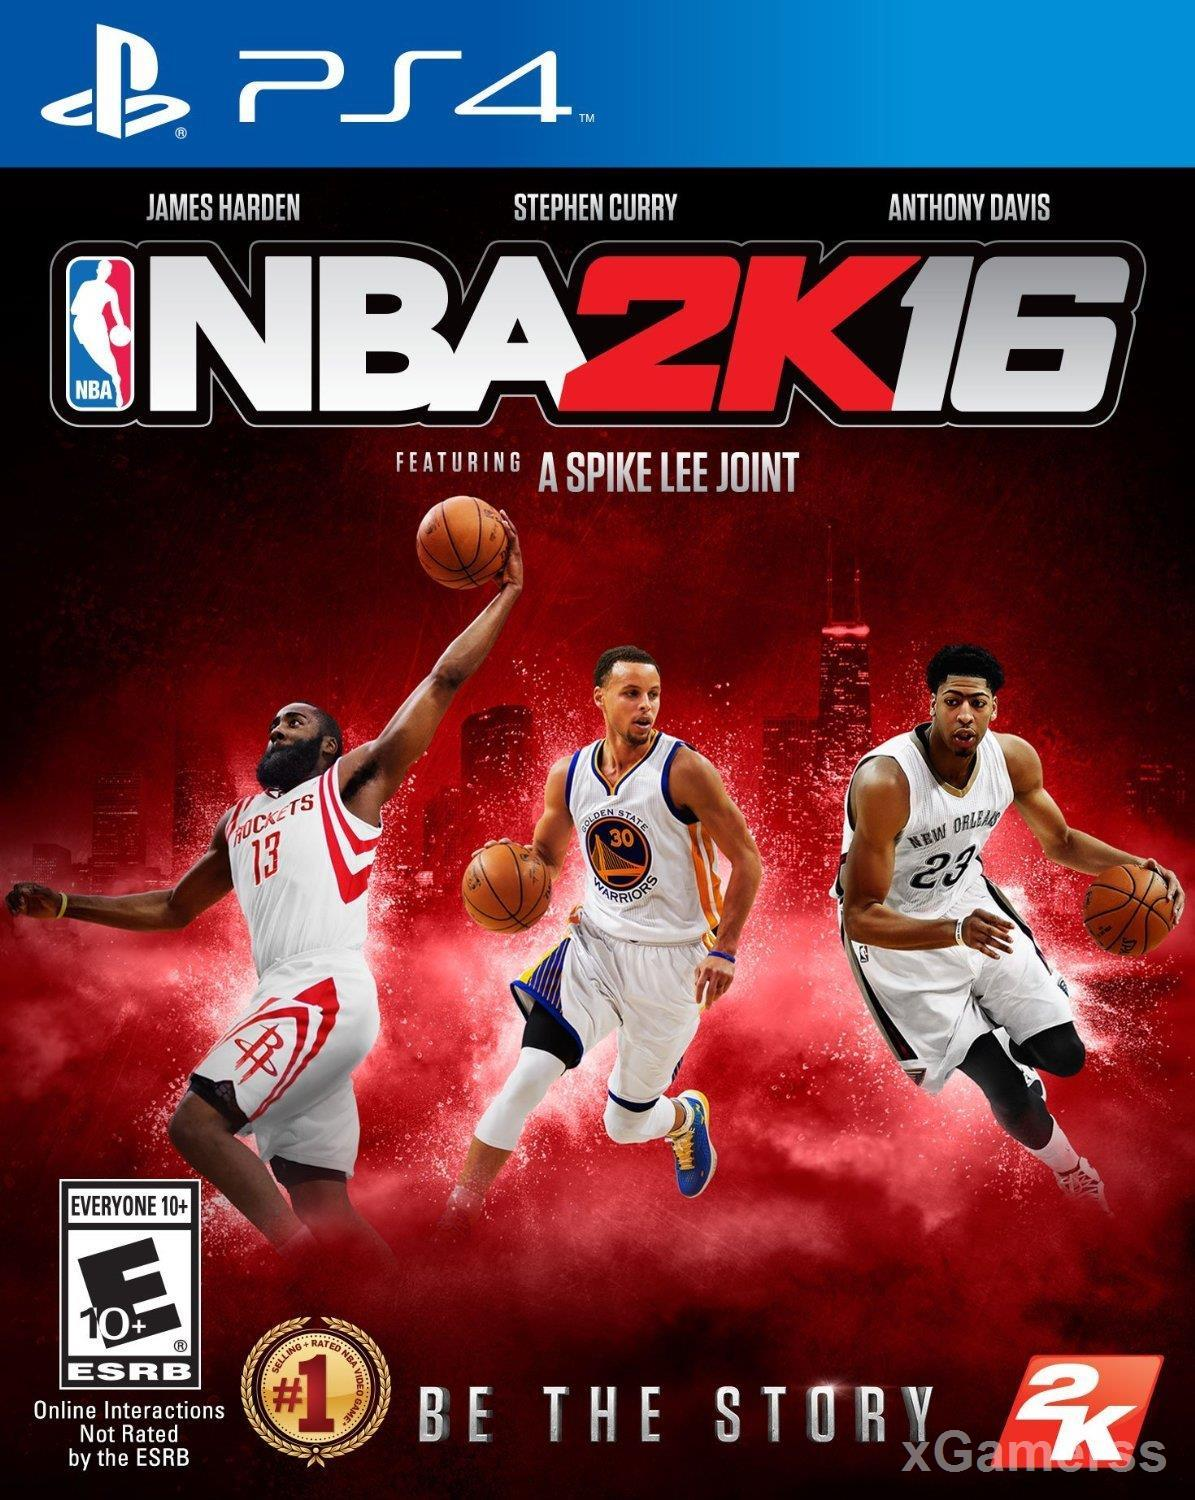 NBA 2K16 PS4 - be the story